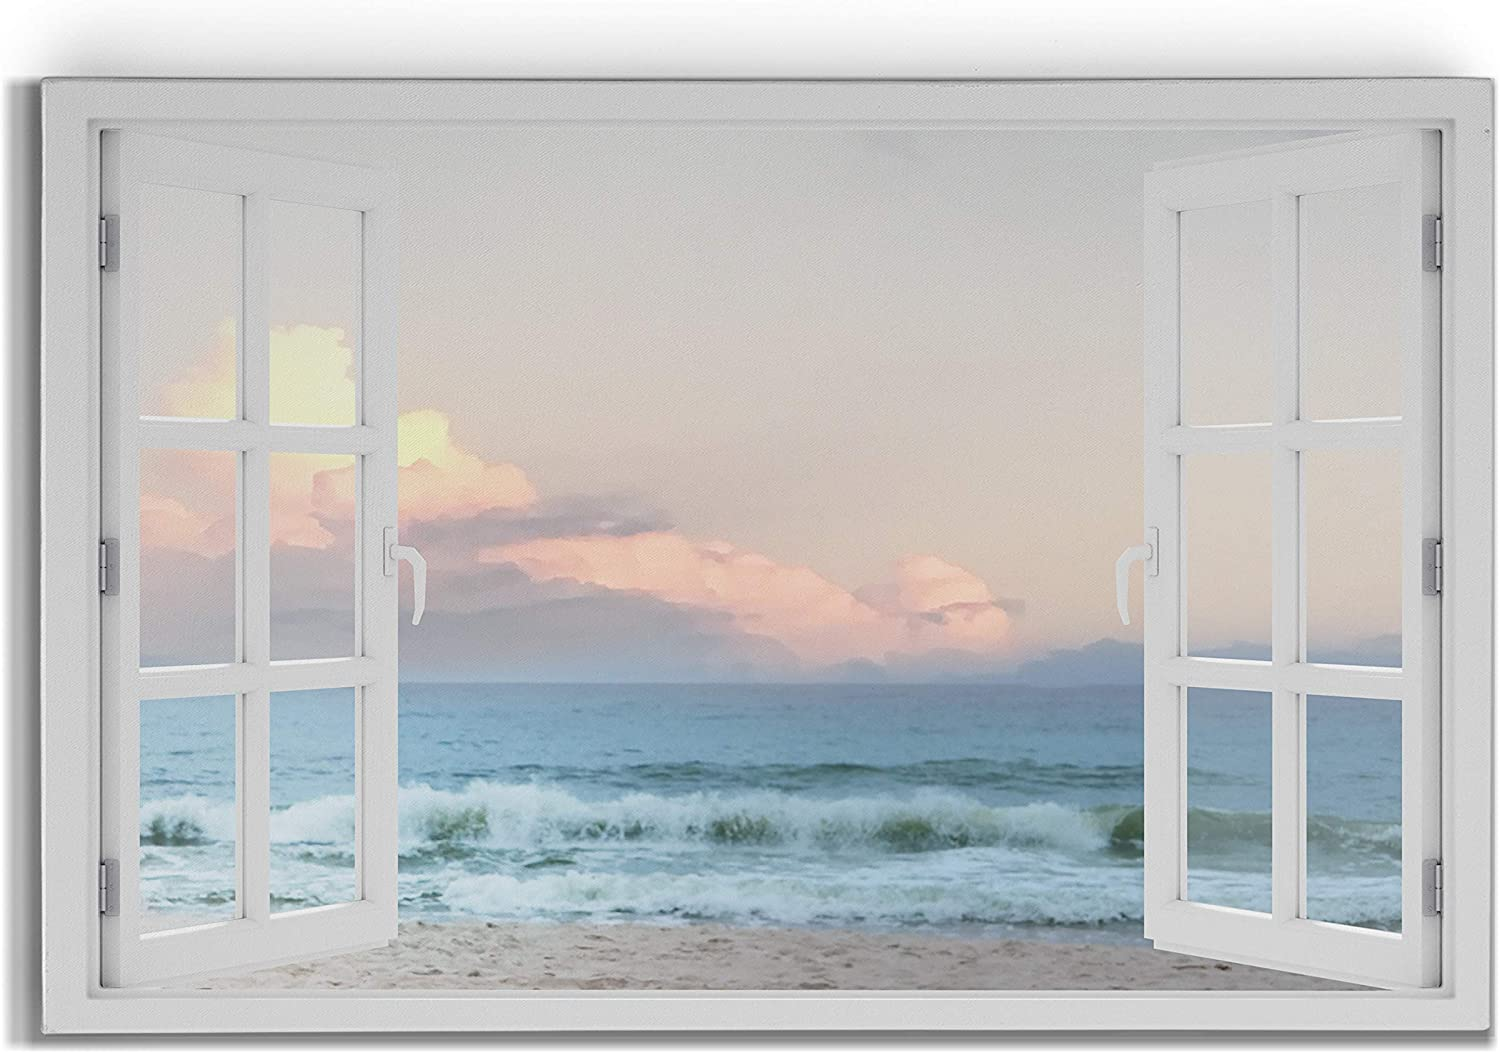 Renditions Gallery White Sand Beach Seascape Open Window Wall Art, Calming Waves and Colorful Clouds, Premium Gallery Wrapped Canvas Decor, Ready to Hang, 12 in H x 18 in W, Made in America Print